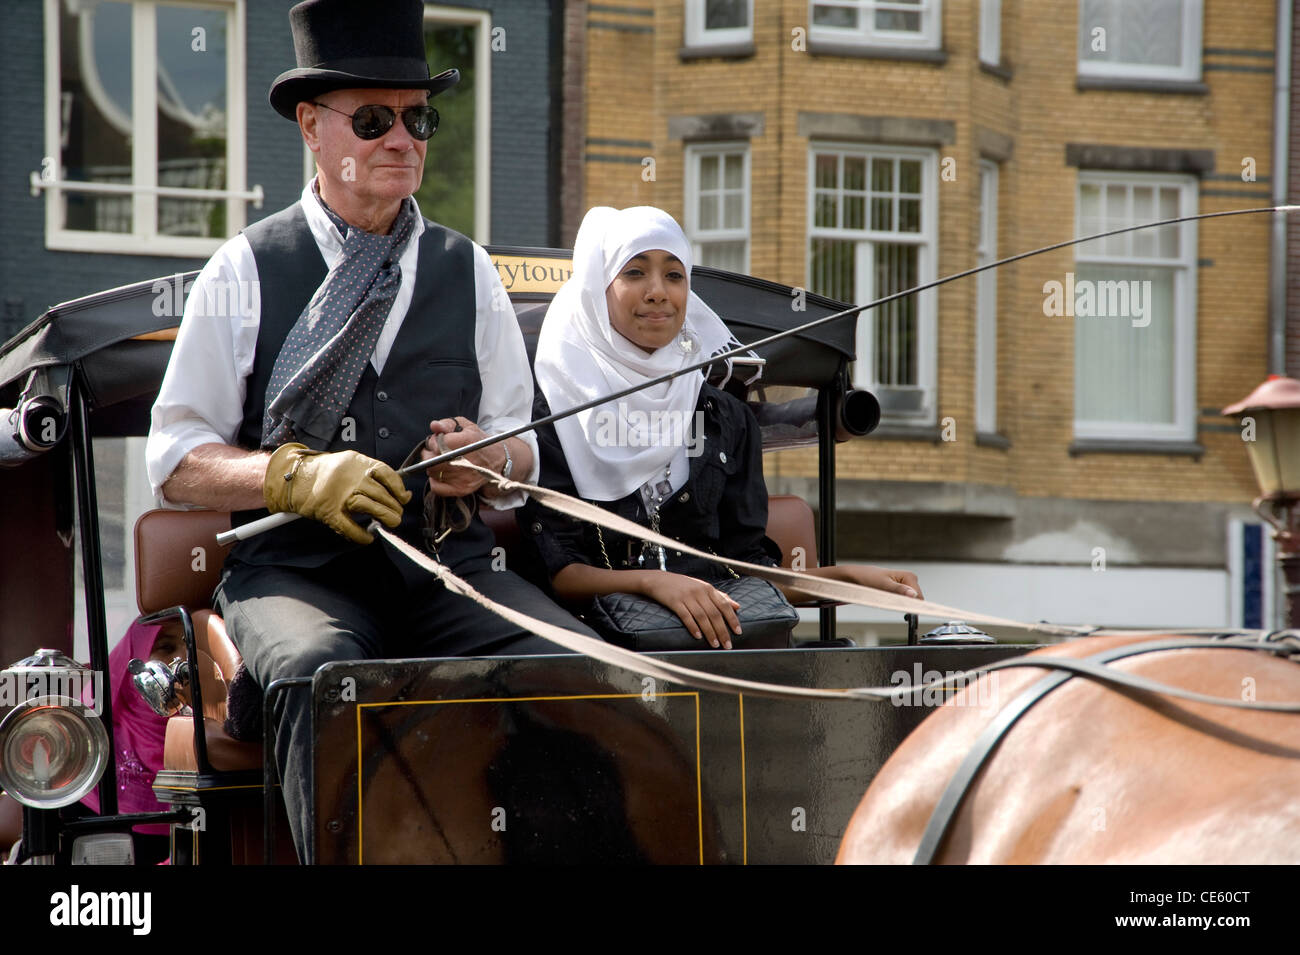 Carriage and horse carrying tourist at Amsterdam prinsengracht. - Stock Image